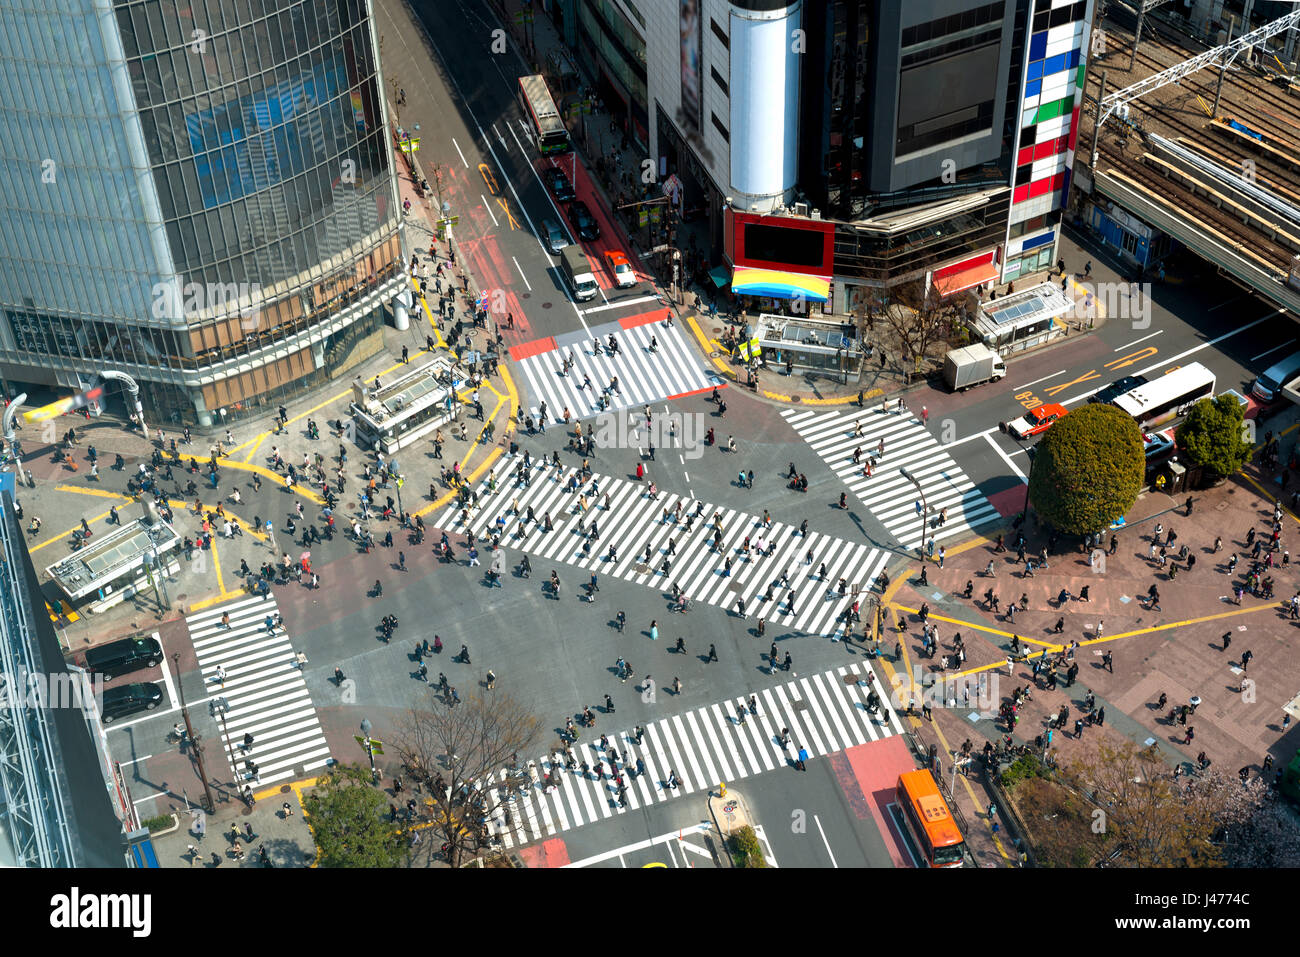 Tokyo, Japan view of Shibuya Crossing, one of the busiest crosswalks in Tokyo, Japan. Stock Photo